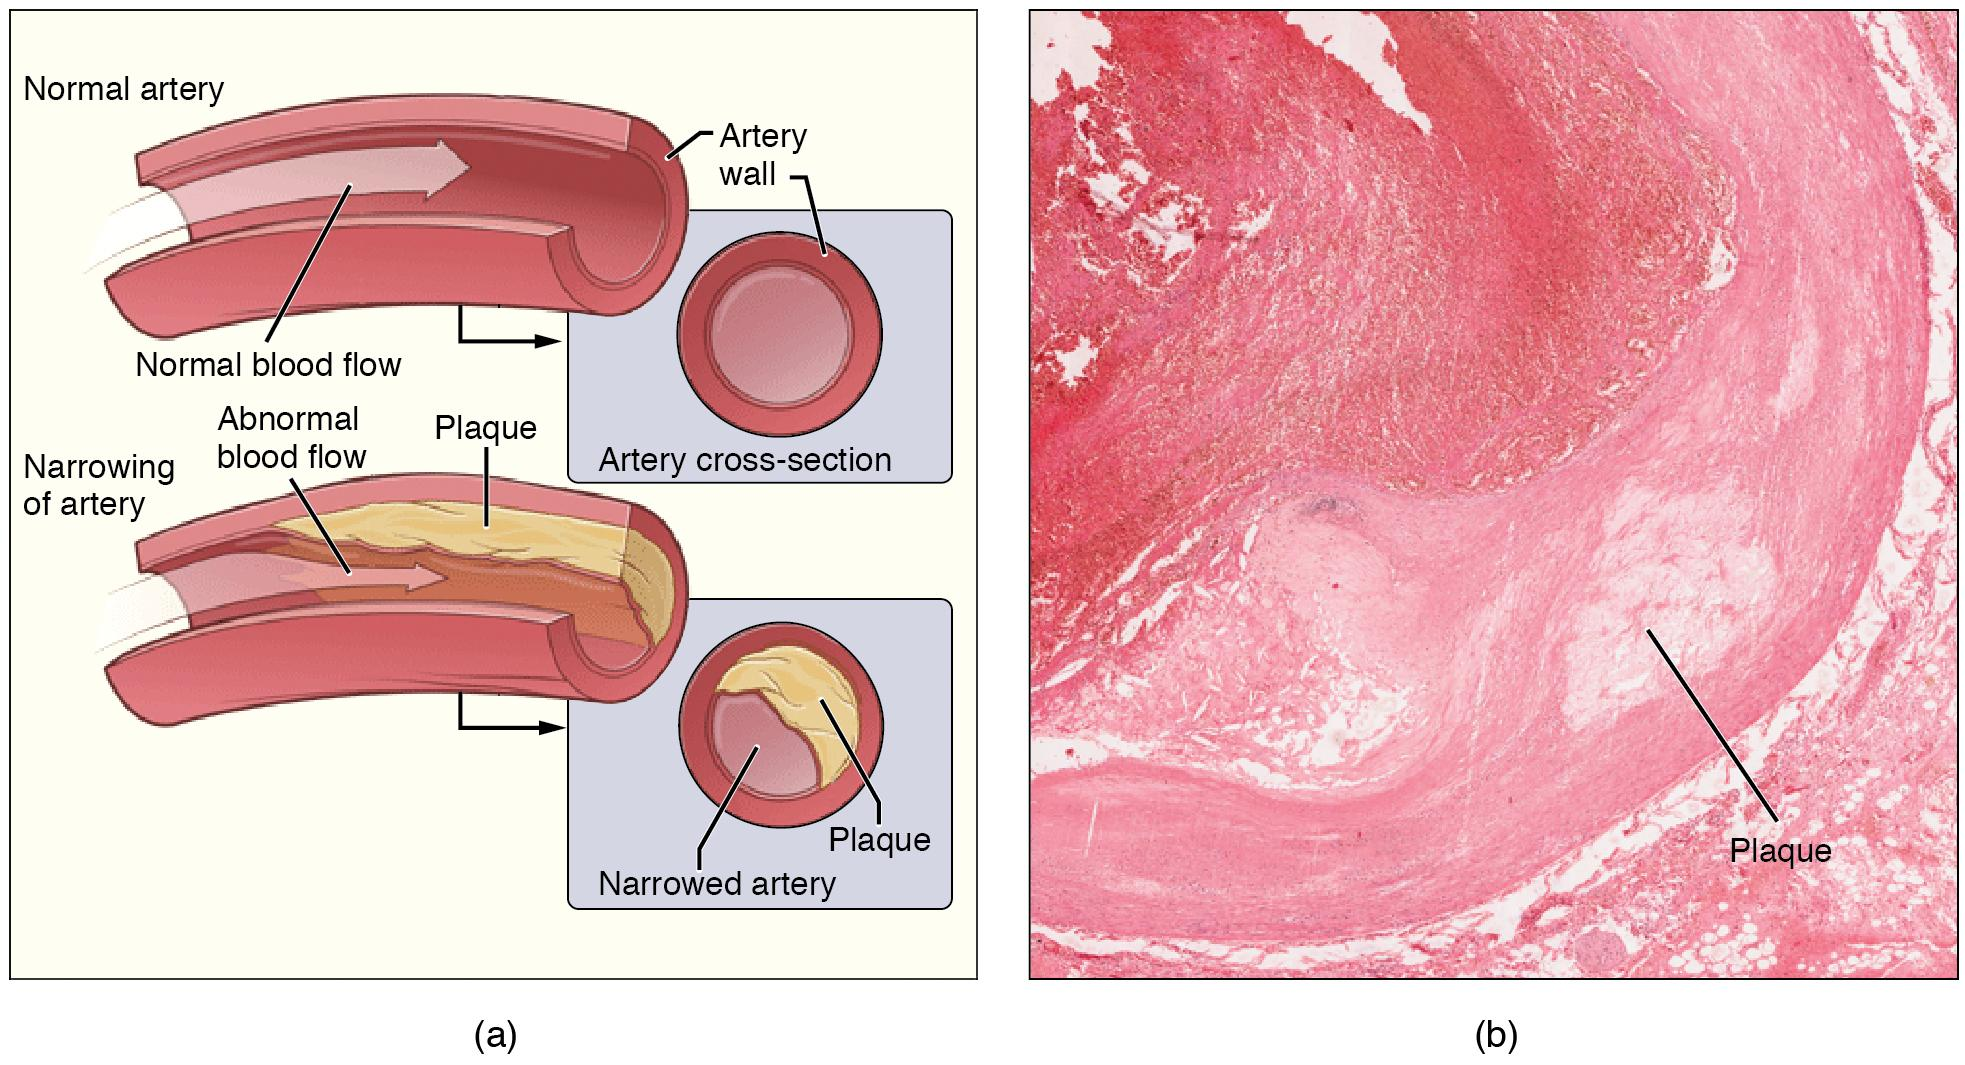 On the left is a cartoon showing a normal artery and one with atherosclerosis, in which a plaque has formed, impeding normal blood flow. On the right, a tissue section viewed under a microscope shows buildup of connective tissue in the artery wall